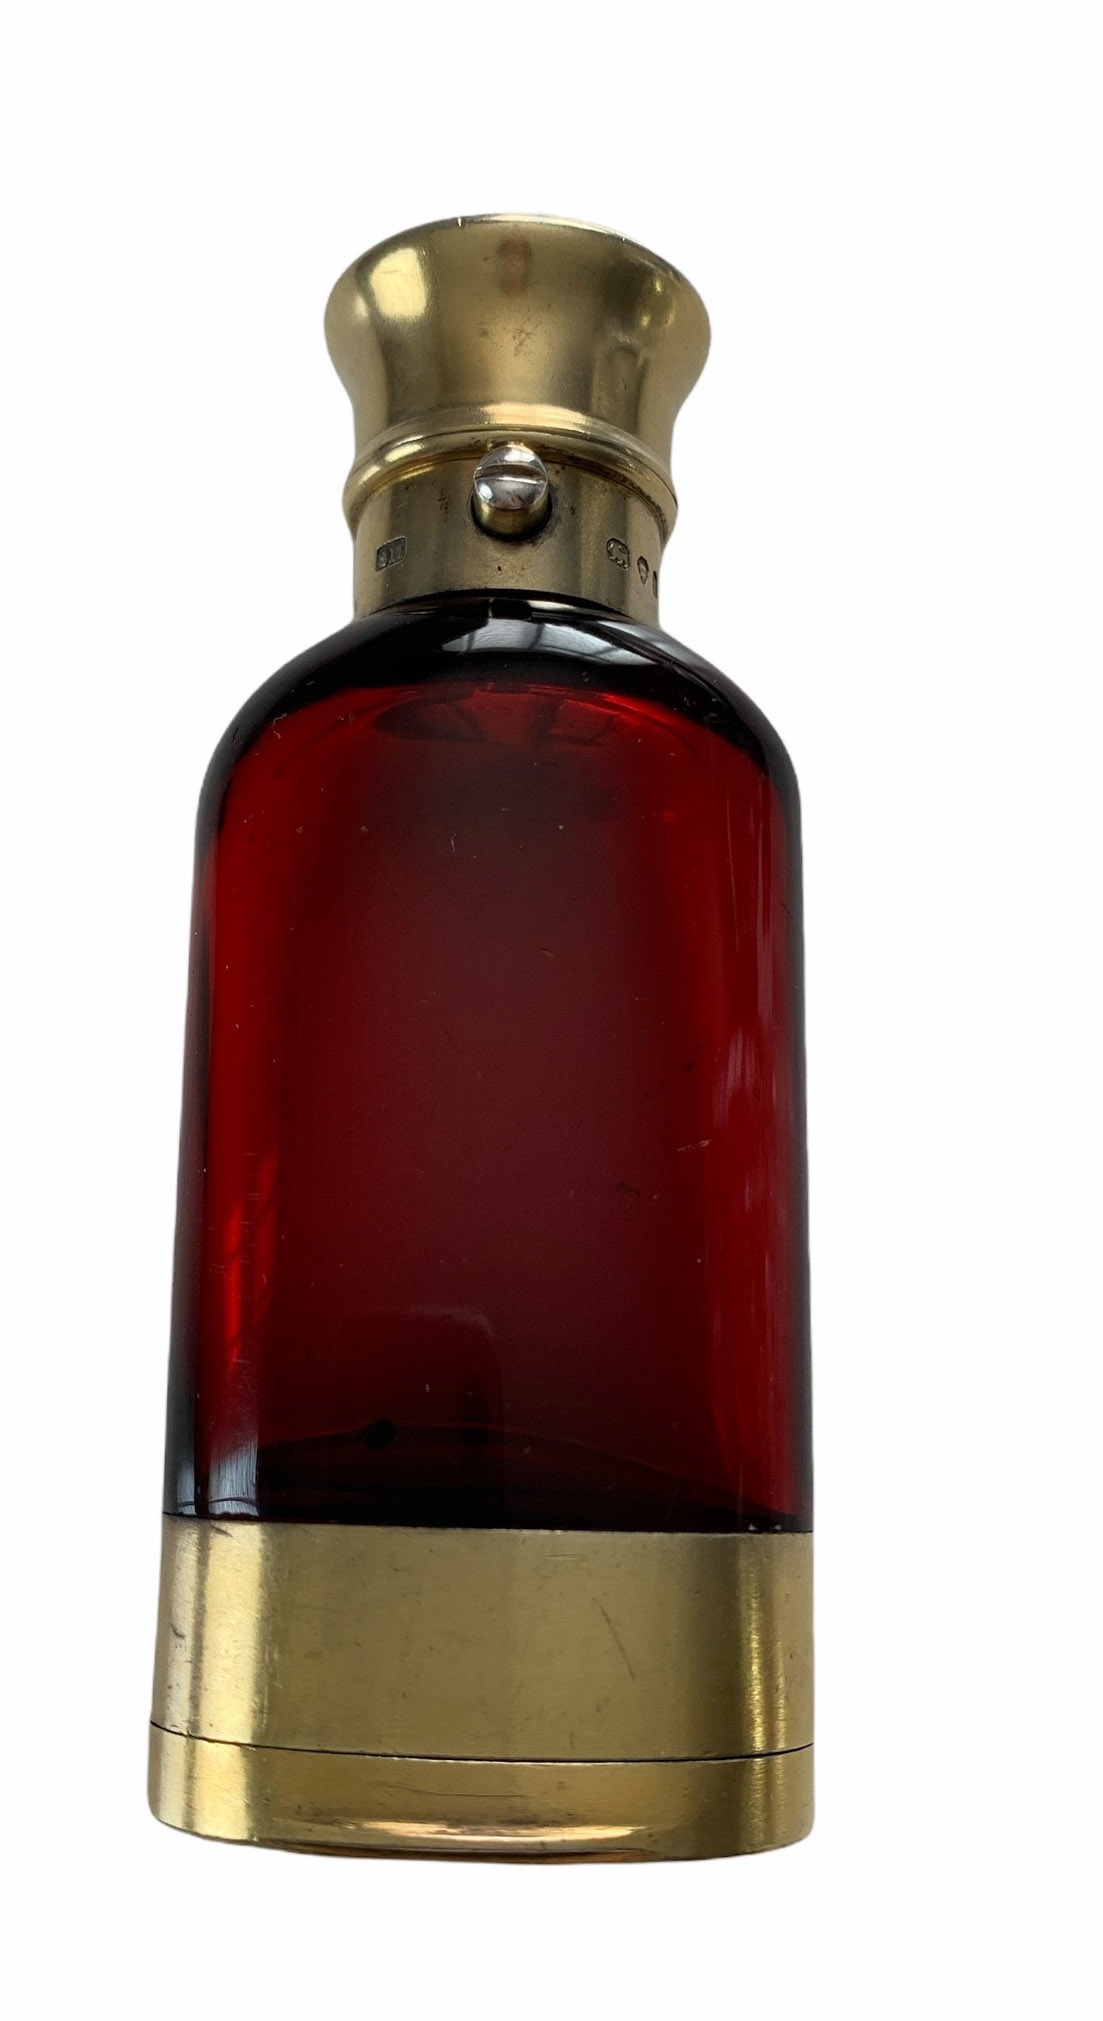 SAMPSON MORDAN & CO., LONDON, 1866, A VERY FINE QUALITY VICTORIAN SILVER GILT MOUNTED RUBY RED GLASS